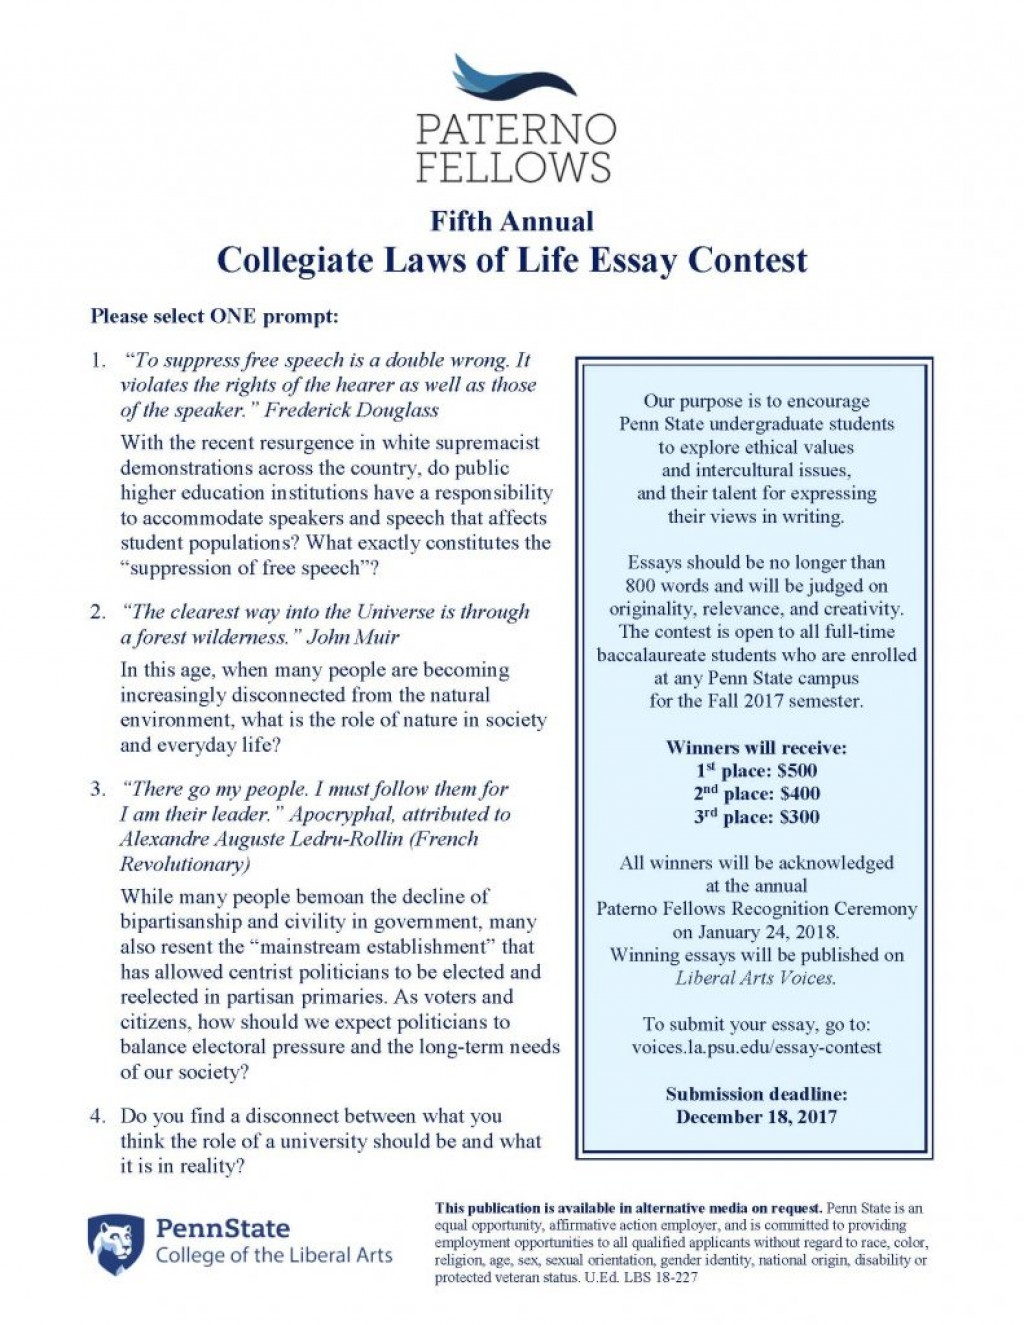 003 Penn State Essay Example Clol Flyer 2i93tbr Formidable 2019 Topic Prompts Large